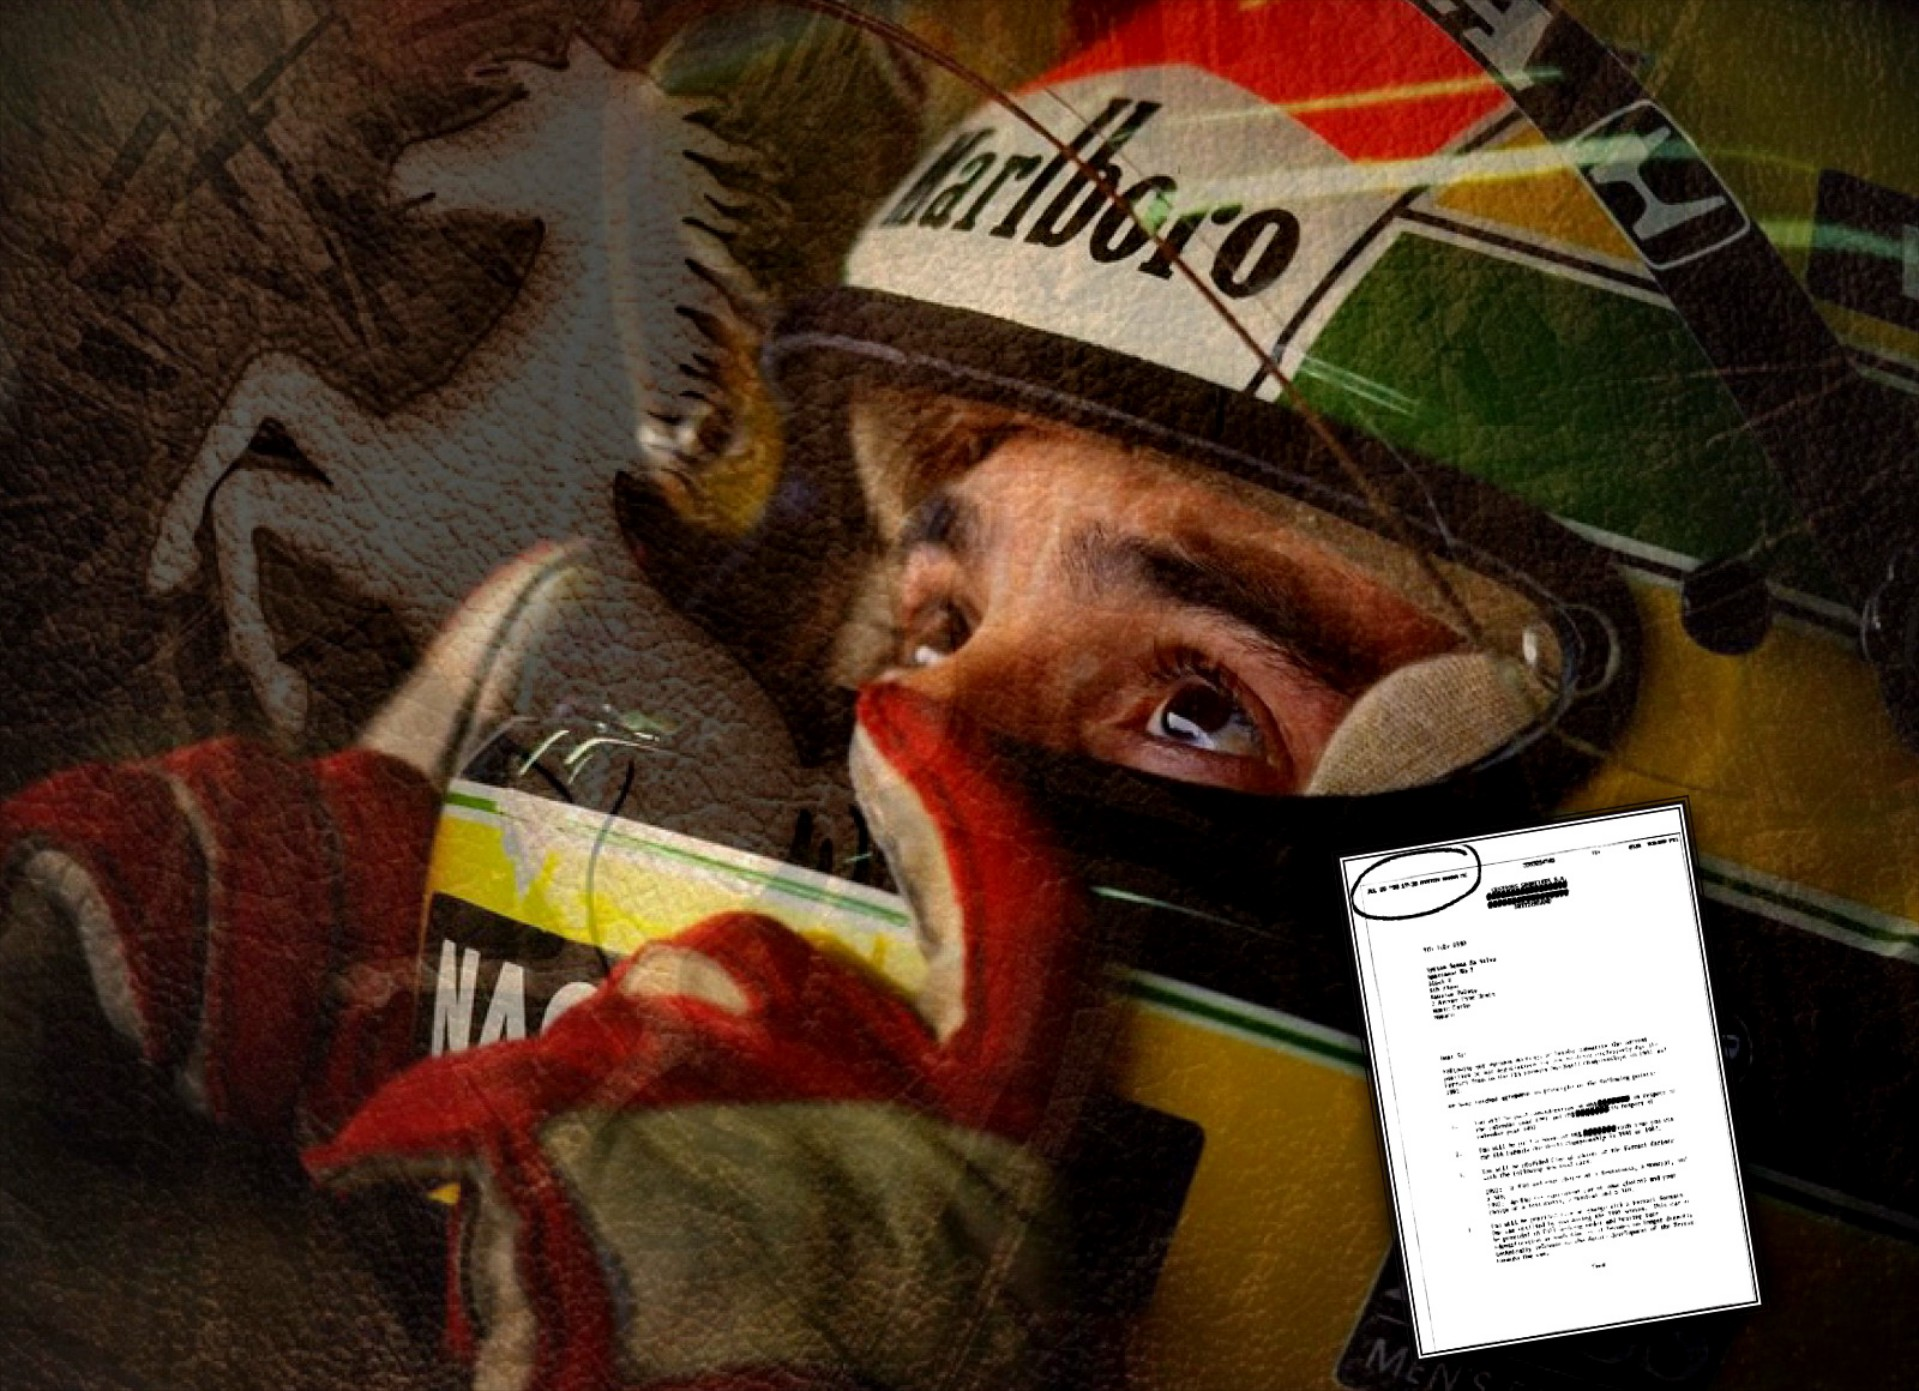 fc77750fd93 Ayrton Senna at Ferrari: A deal that was stopped from the inside ...